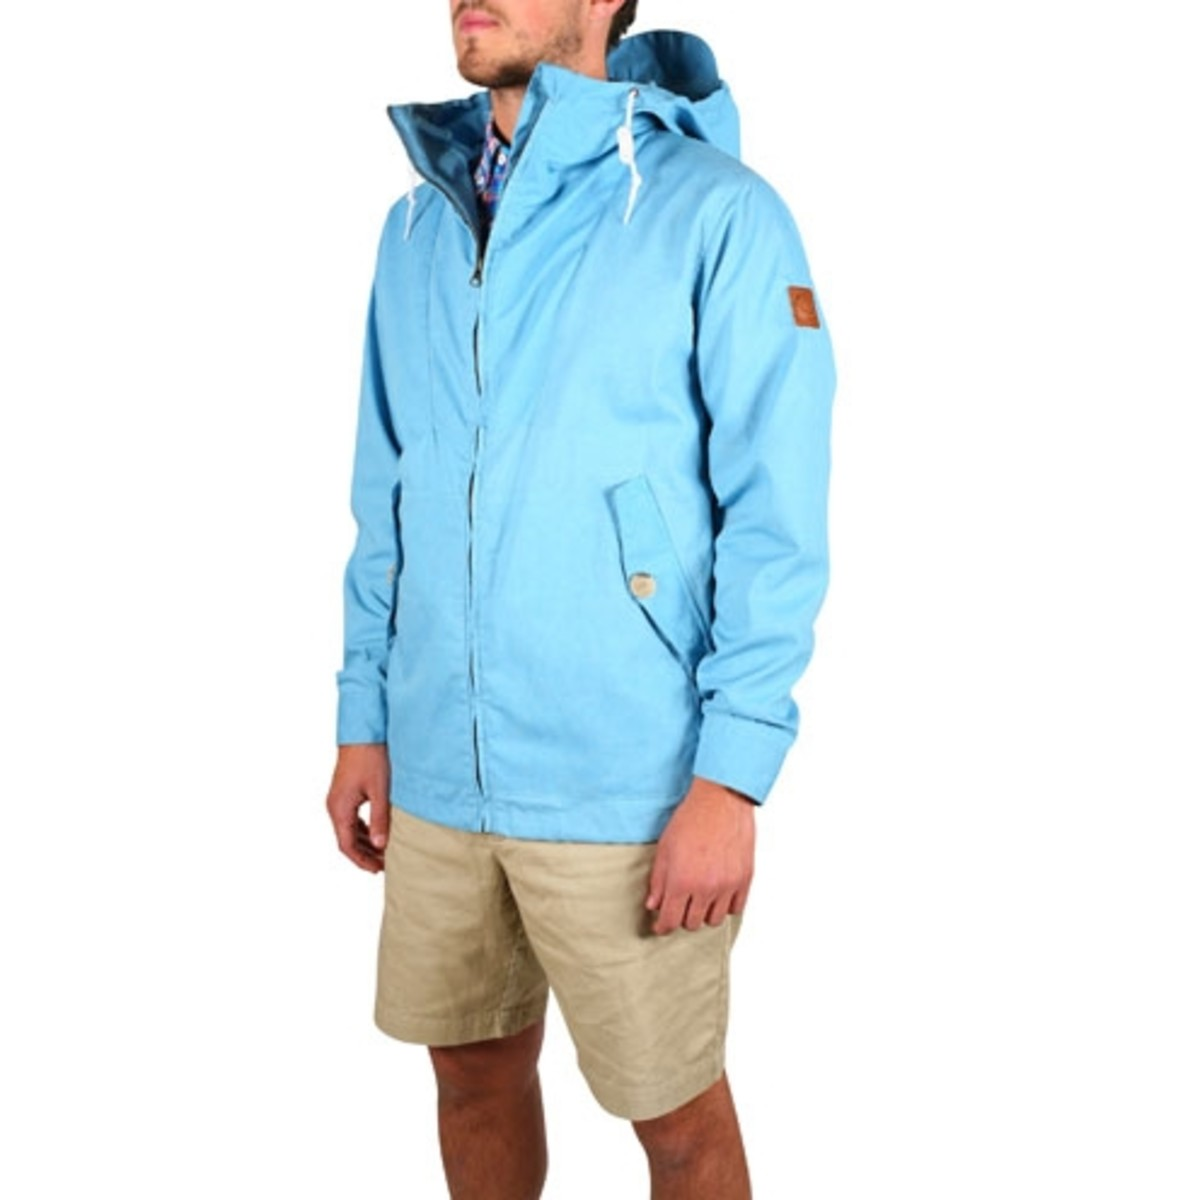 Penfield SS2011 Jackets 35